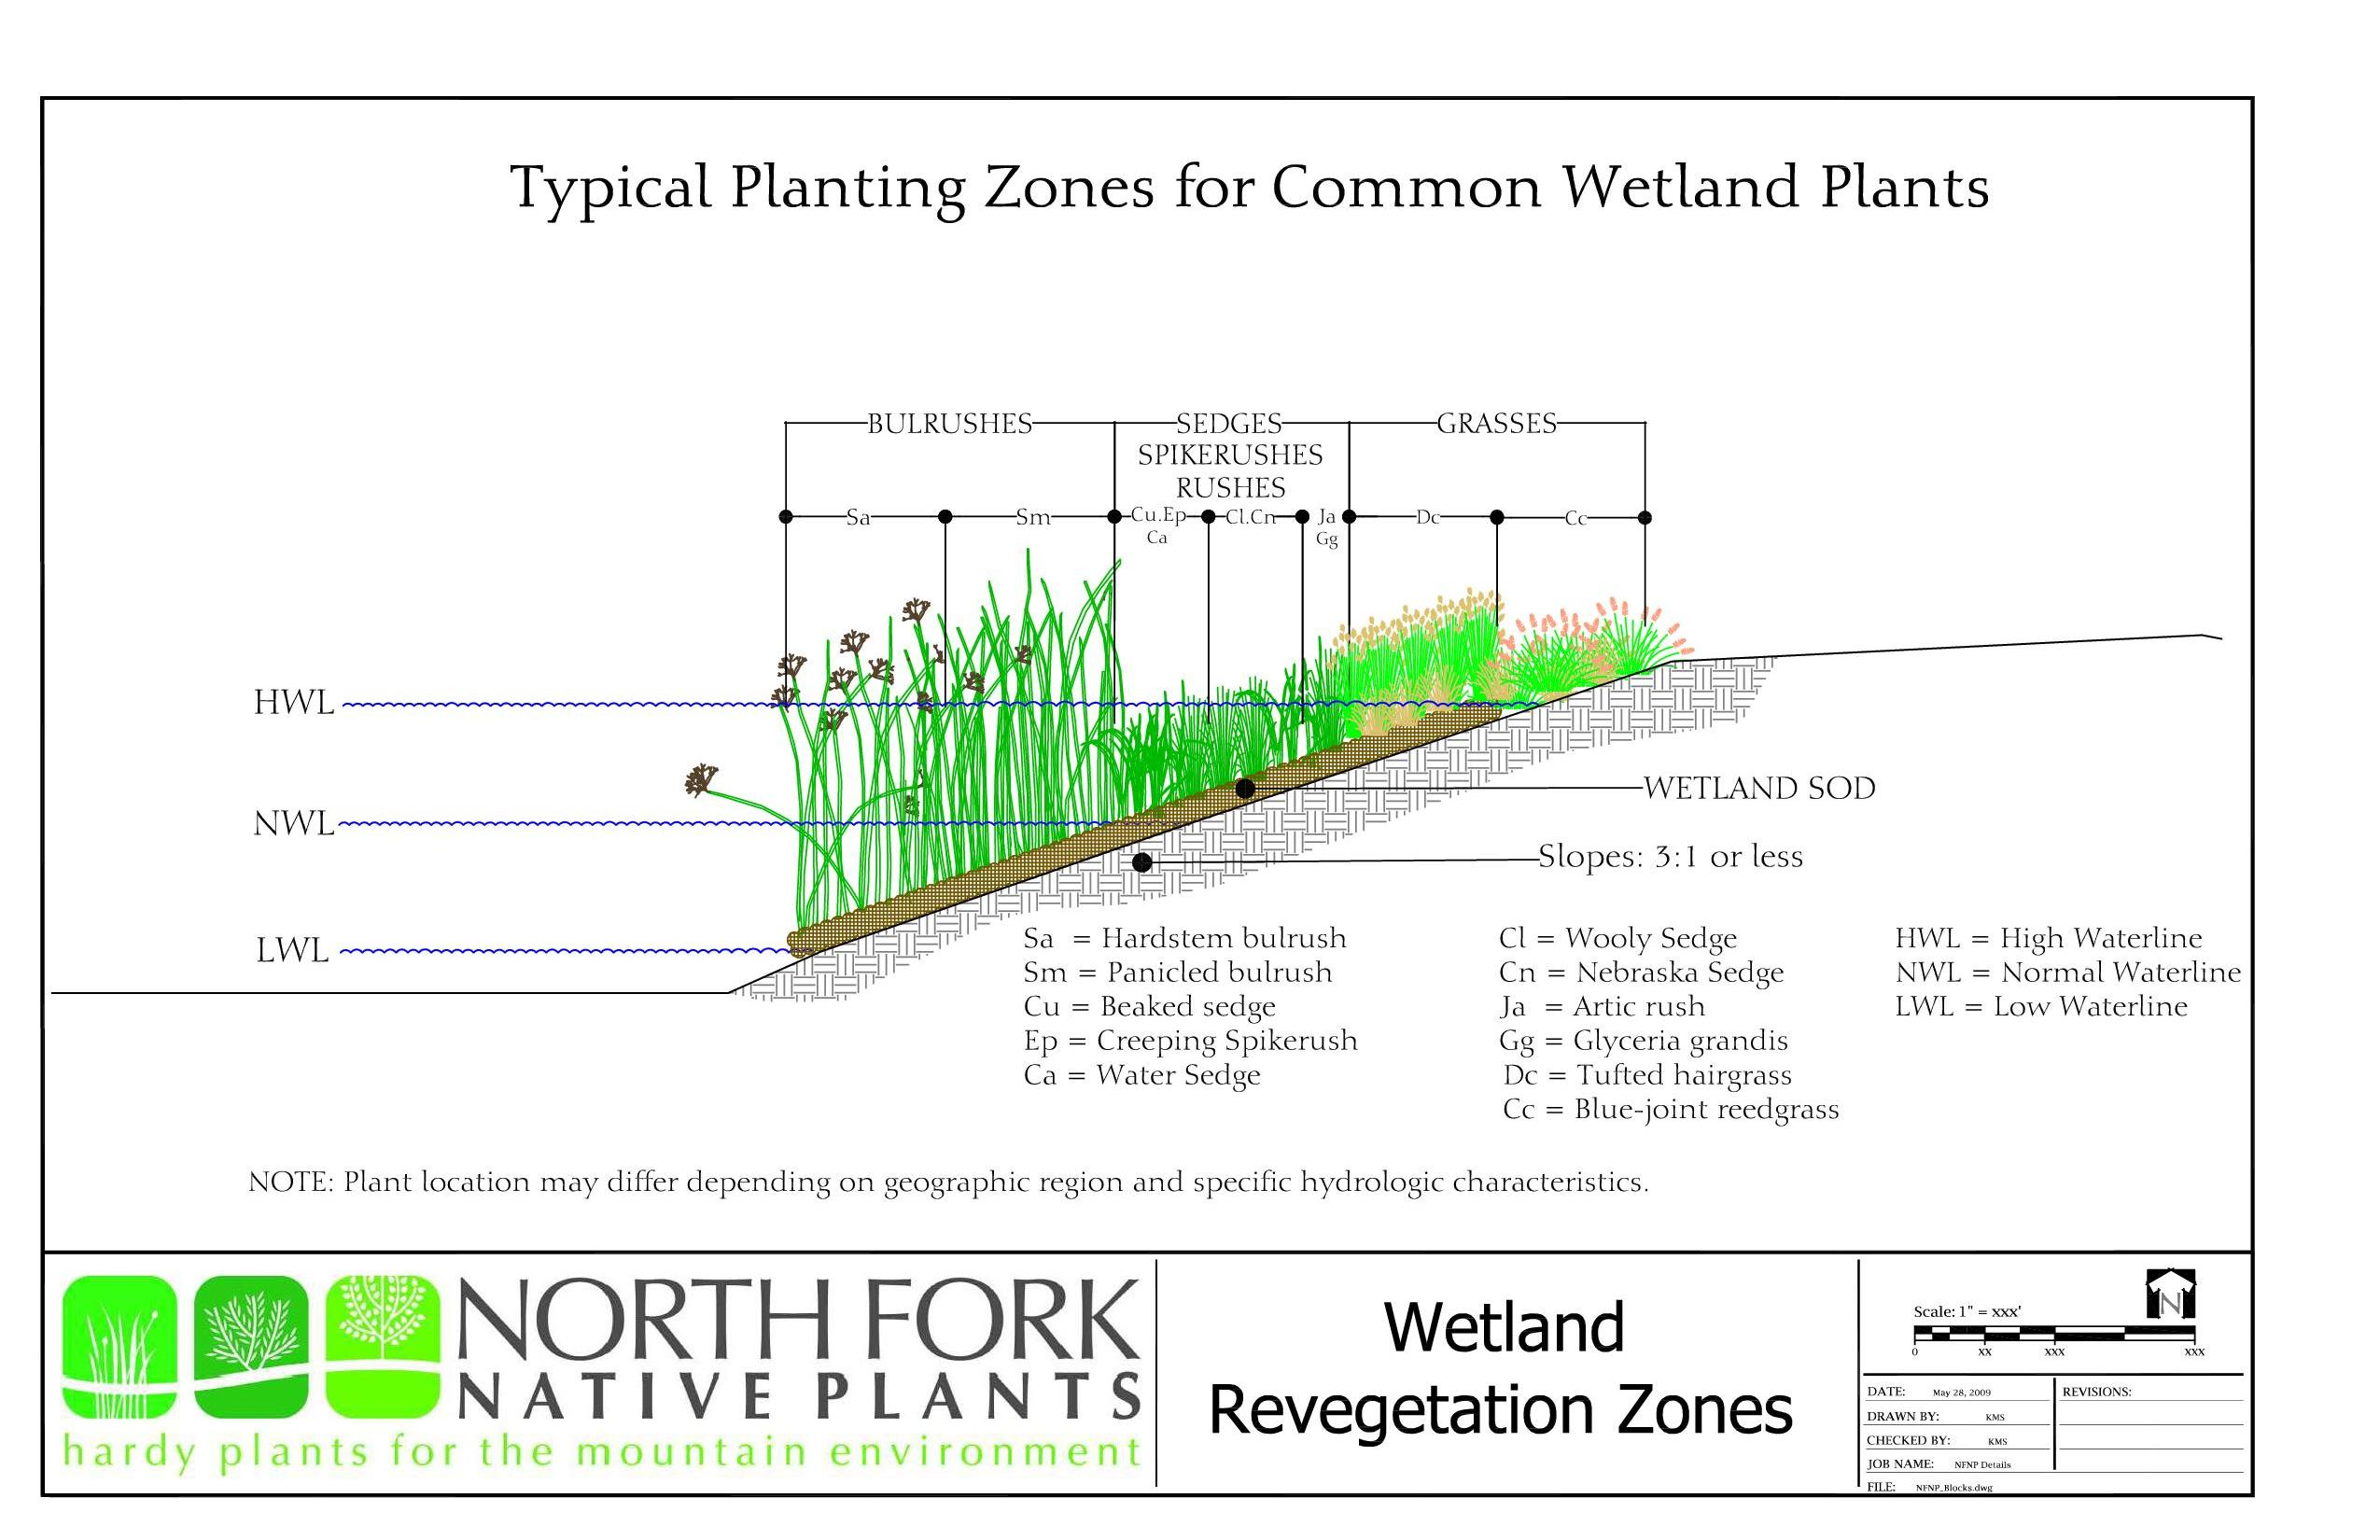 nfnp-typical-wetlandreveg-zones.jpg